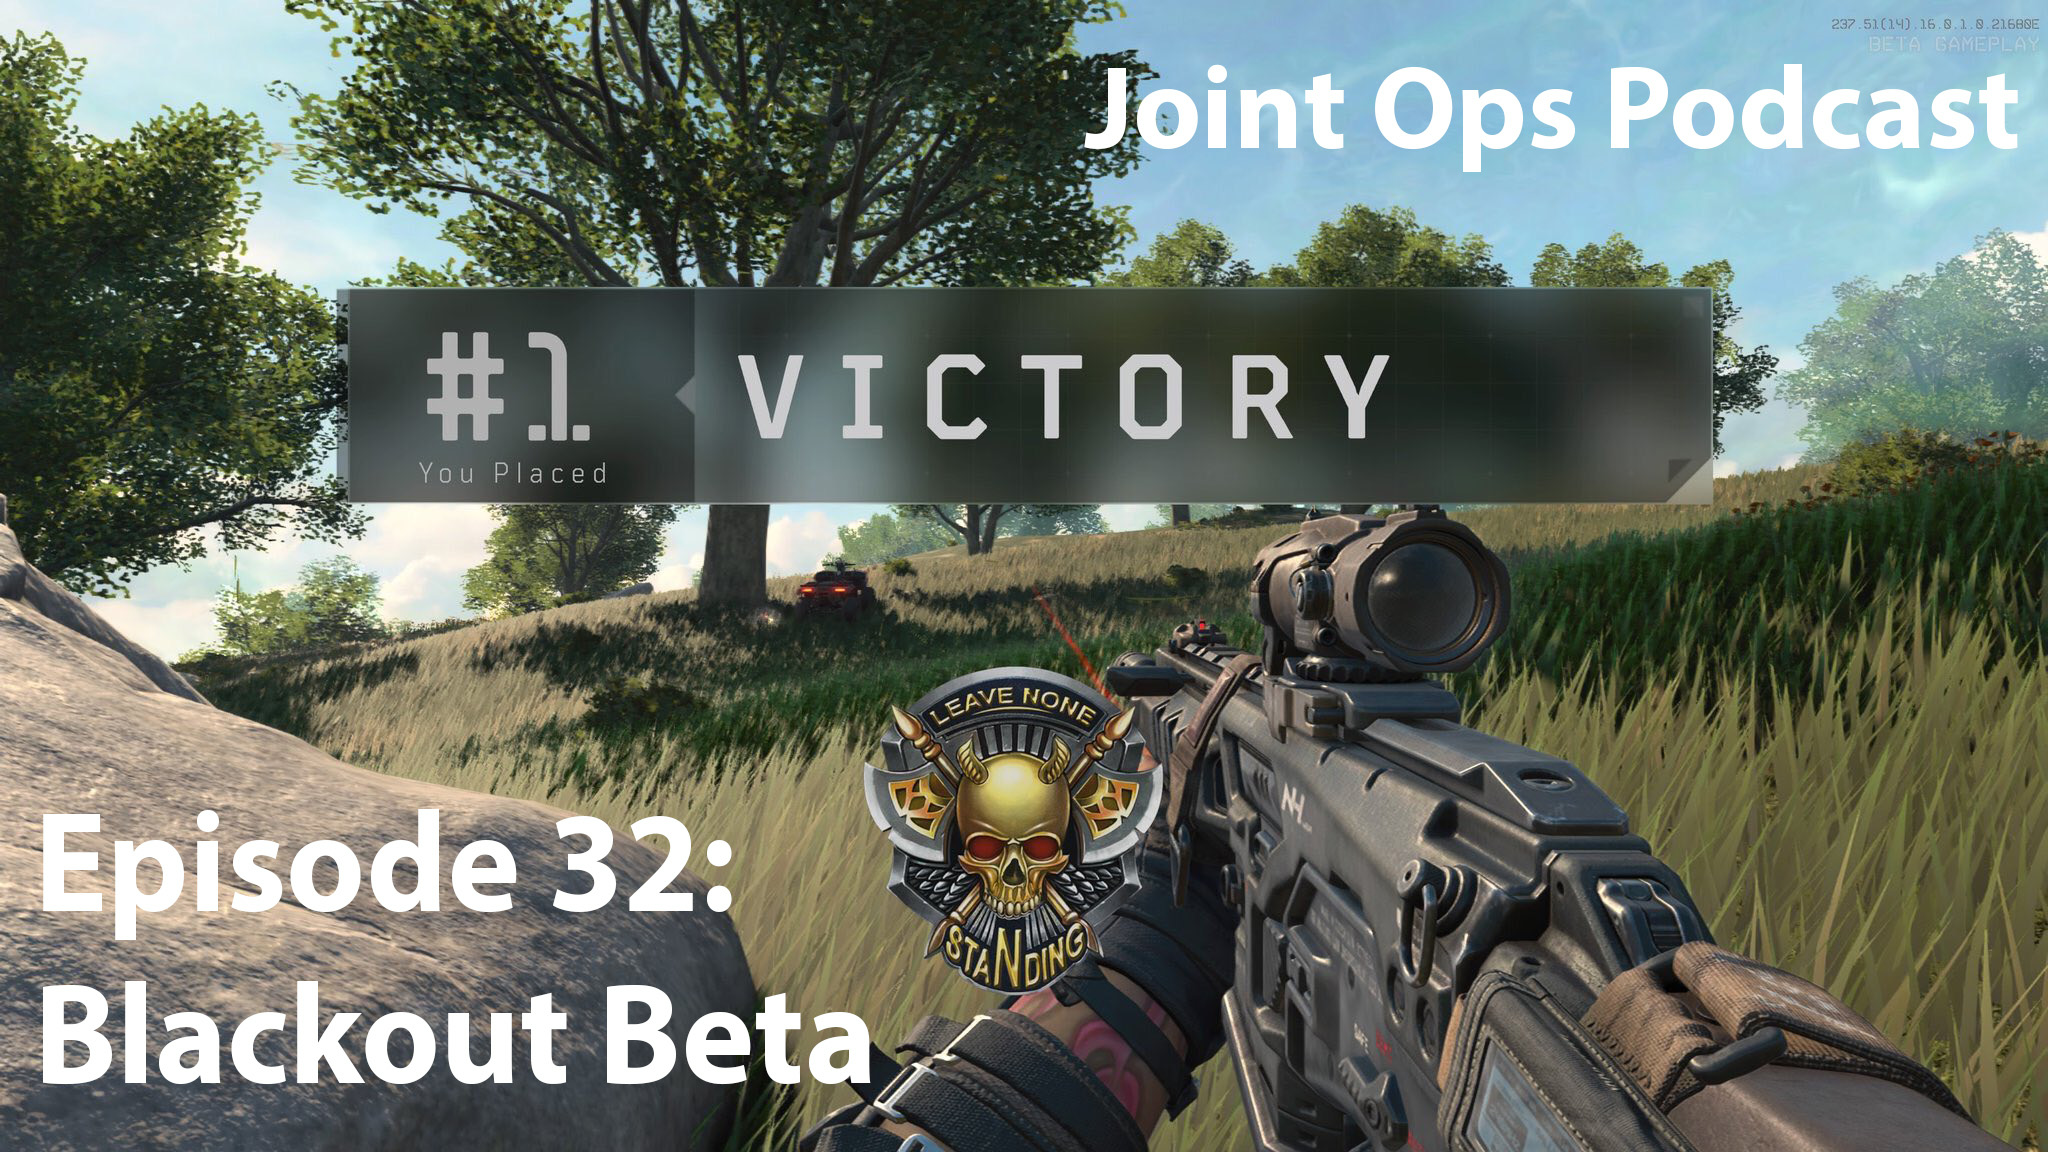 Joint Ops Episode 32: Blackout Beta